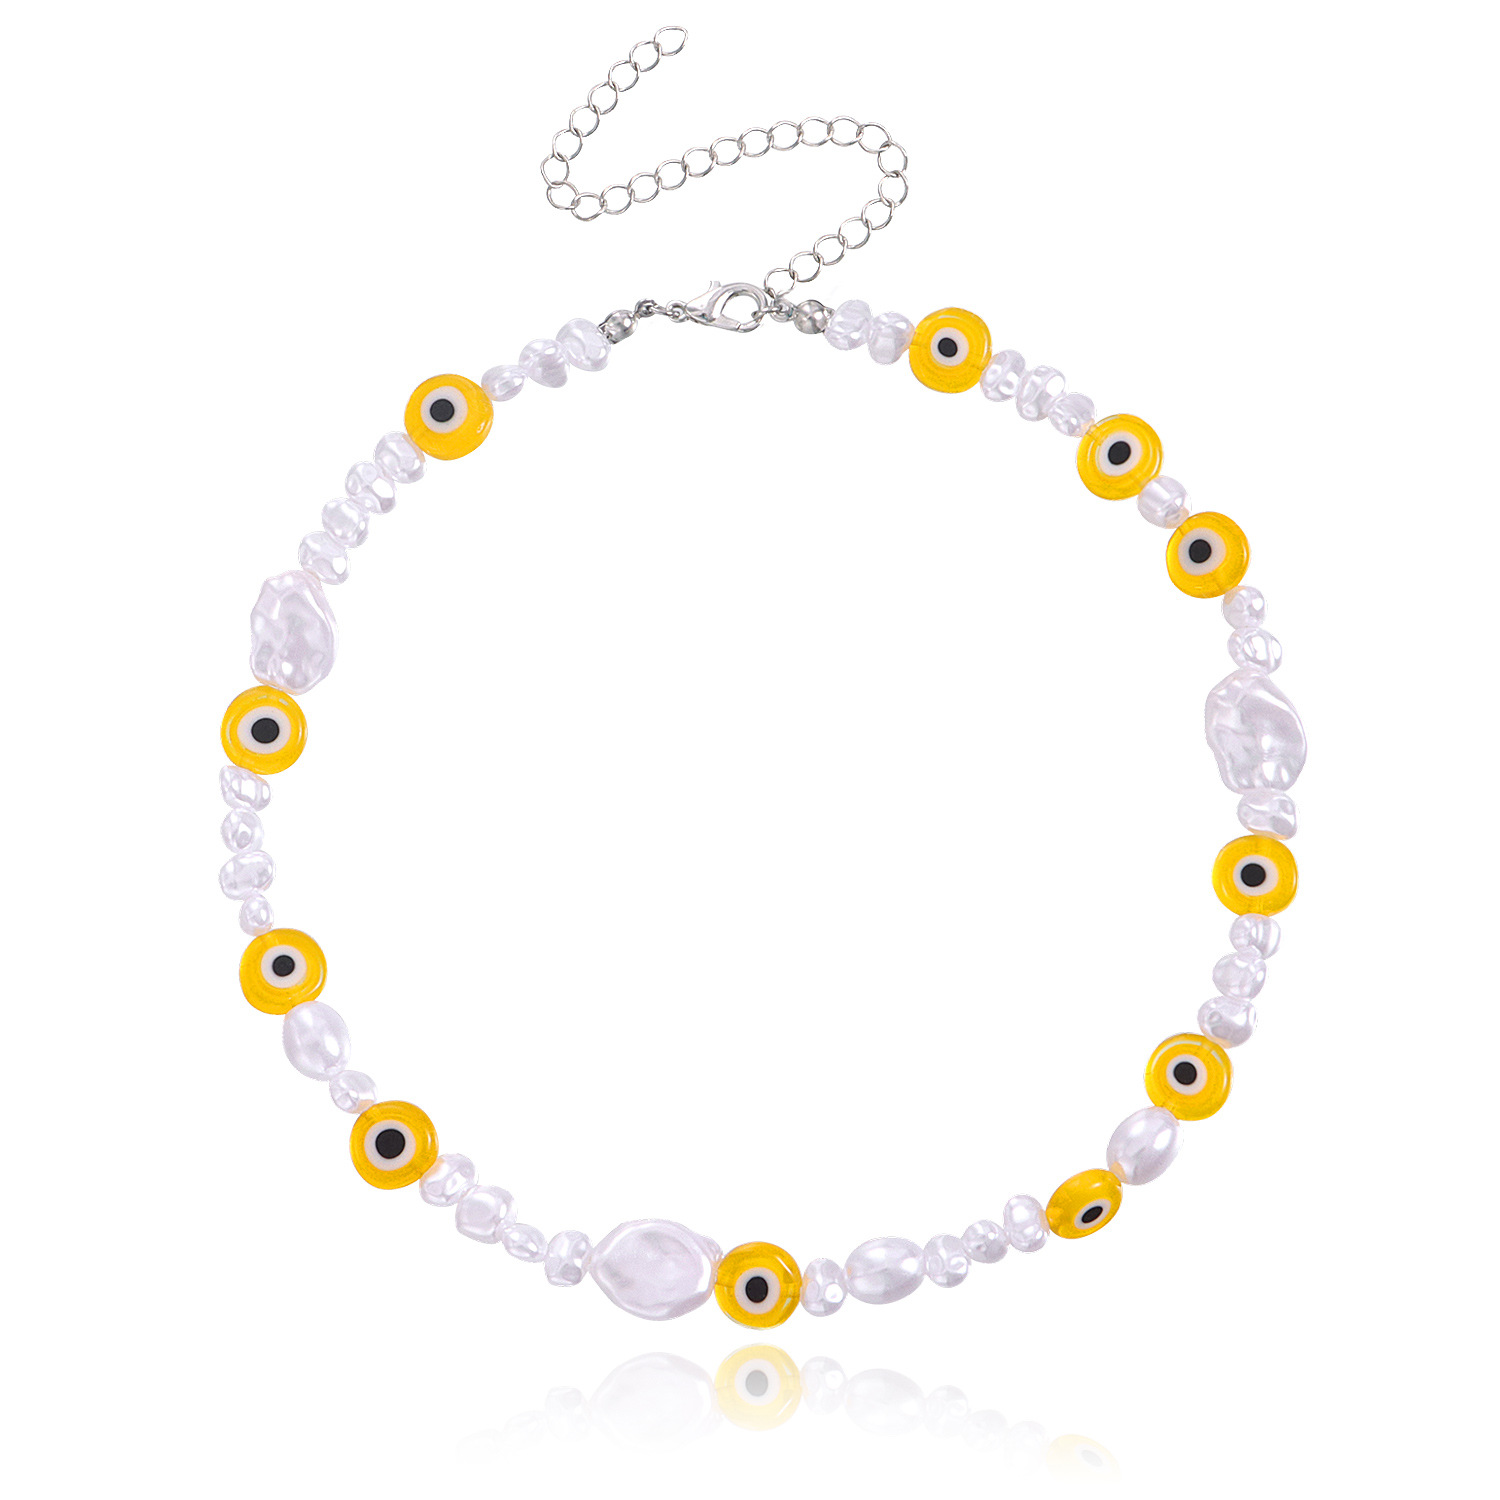 Stylish Irregular Faux Pearl Eye Necklace for Funky Summer Party Looks